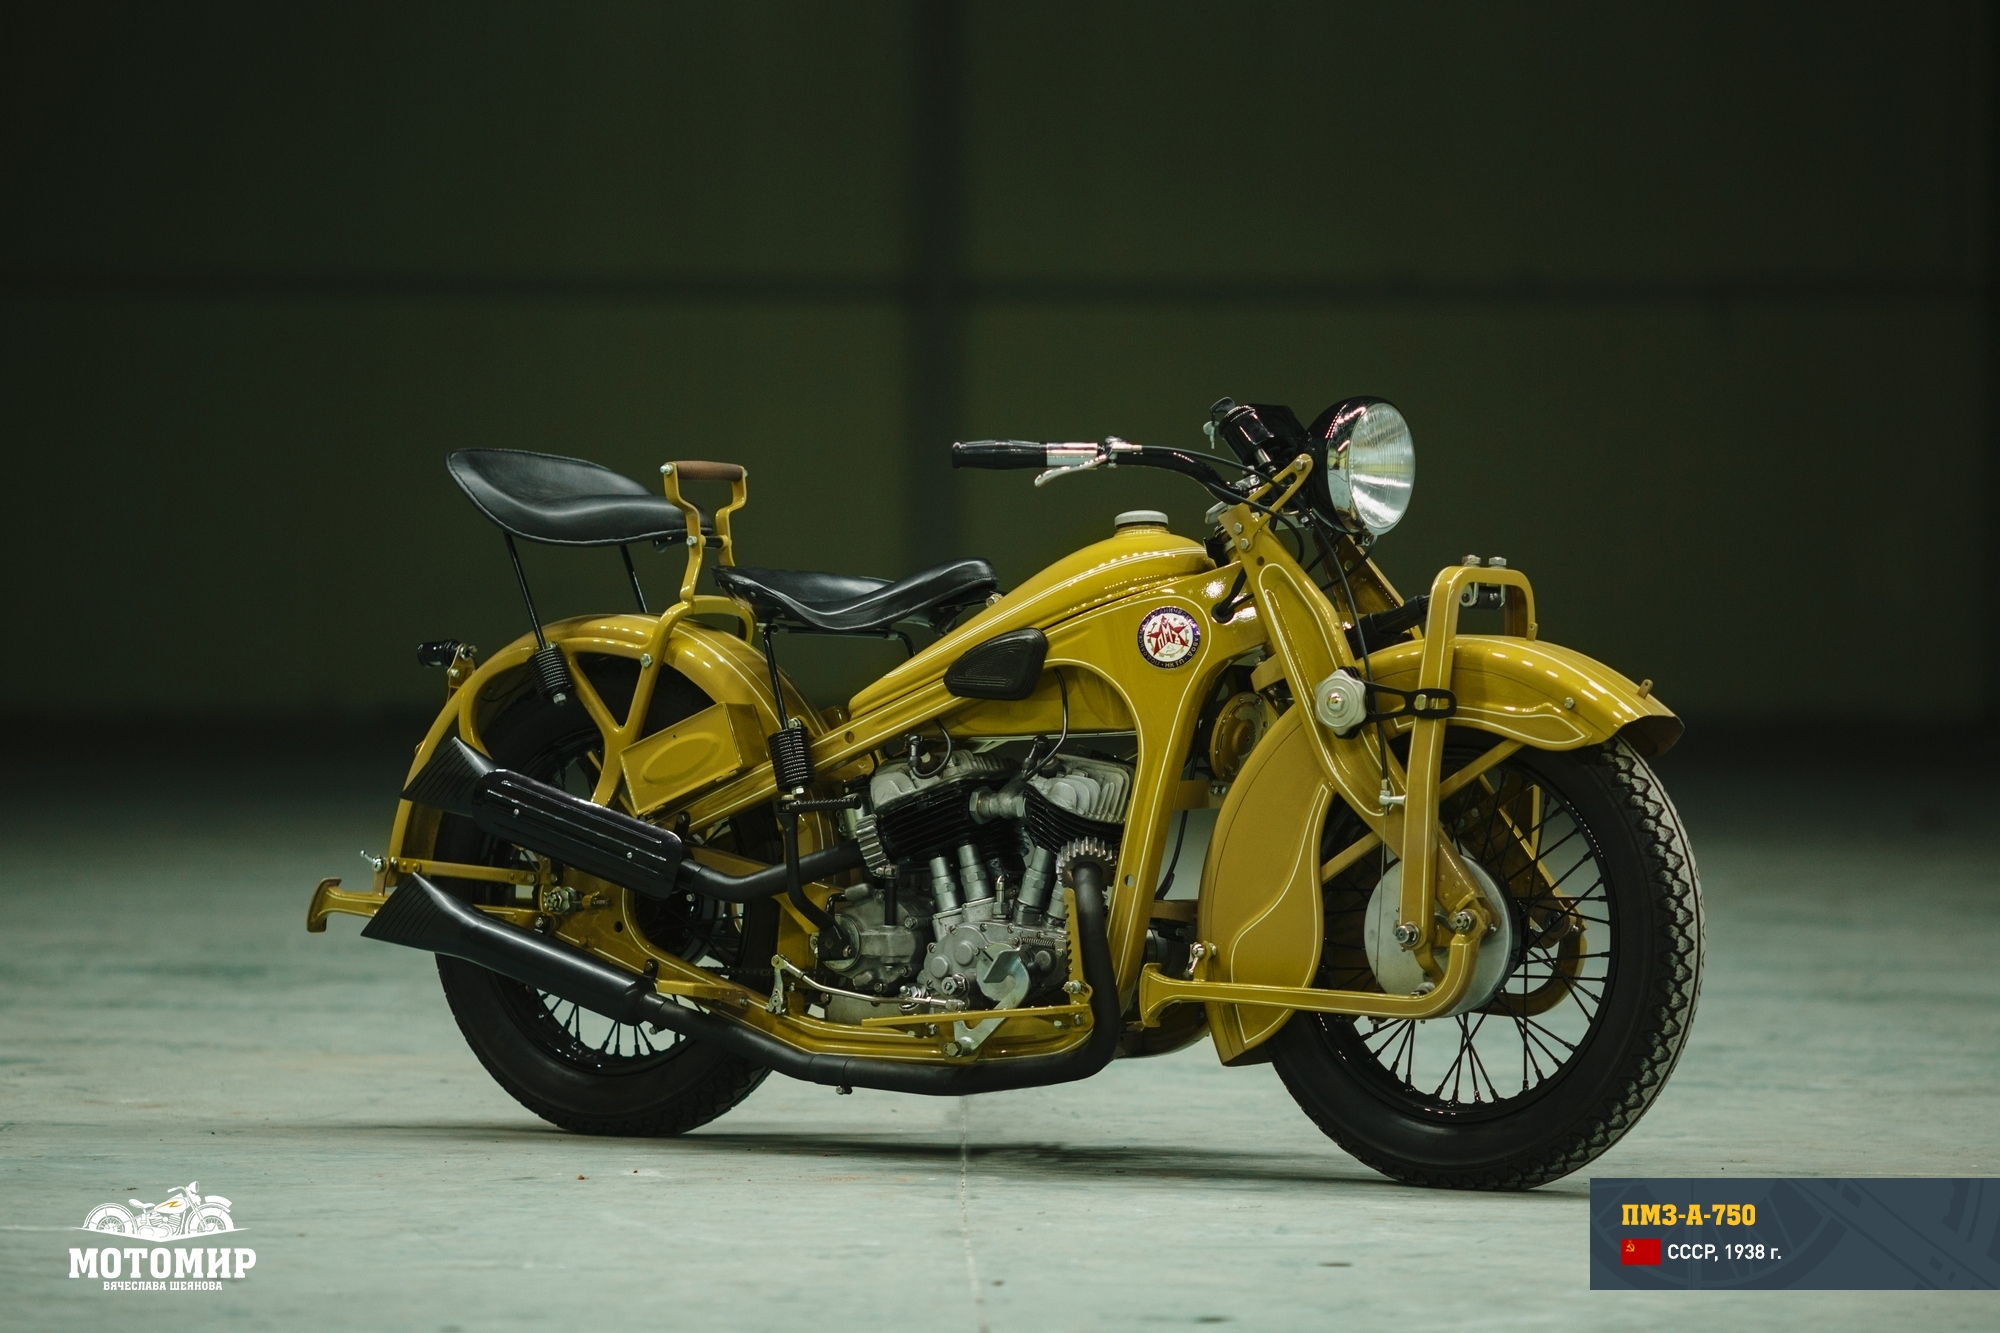 Motorcycle PMZ-A-750: technical specifications 97